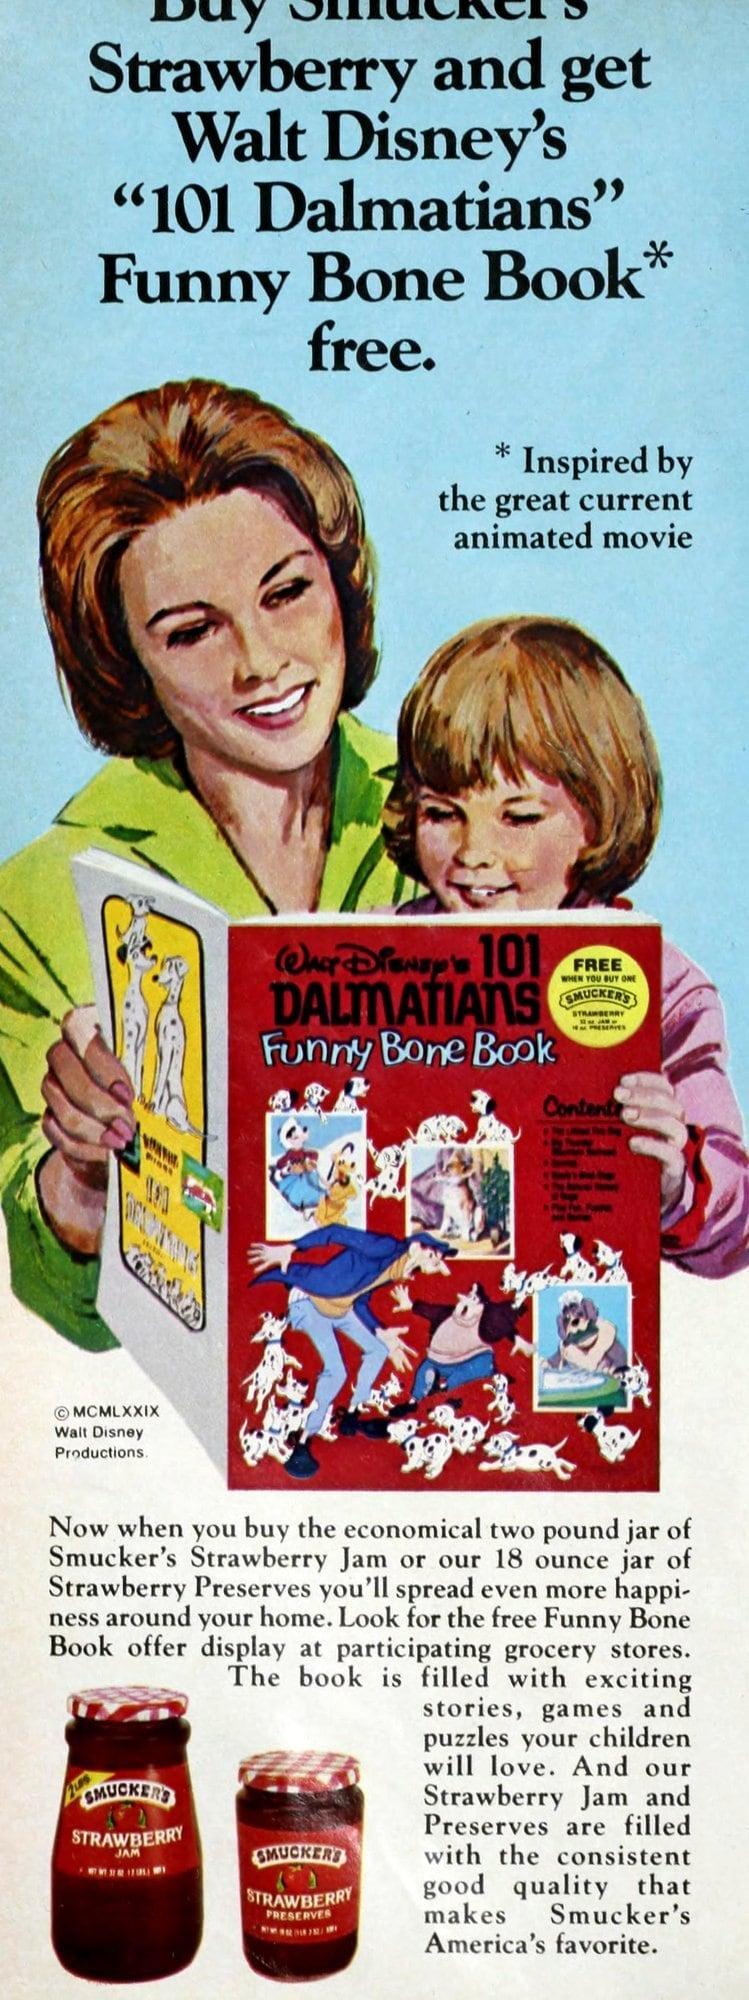 Smuckers Disney offer - 101 Dalmations book (1979)